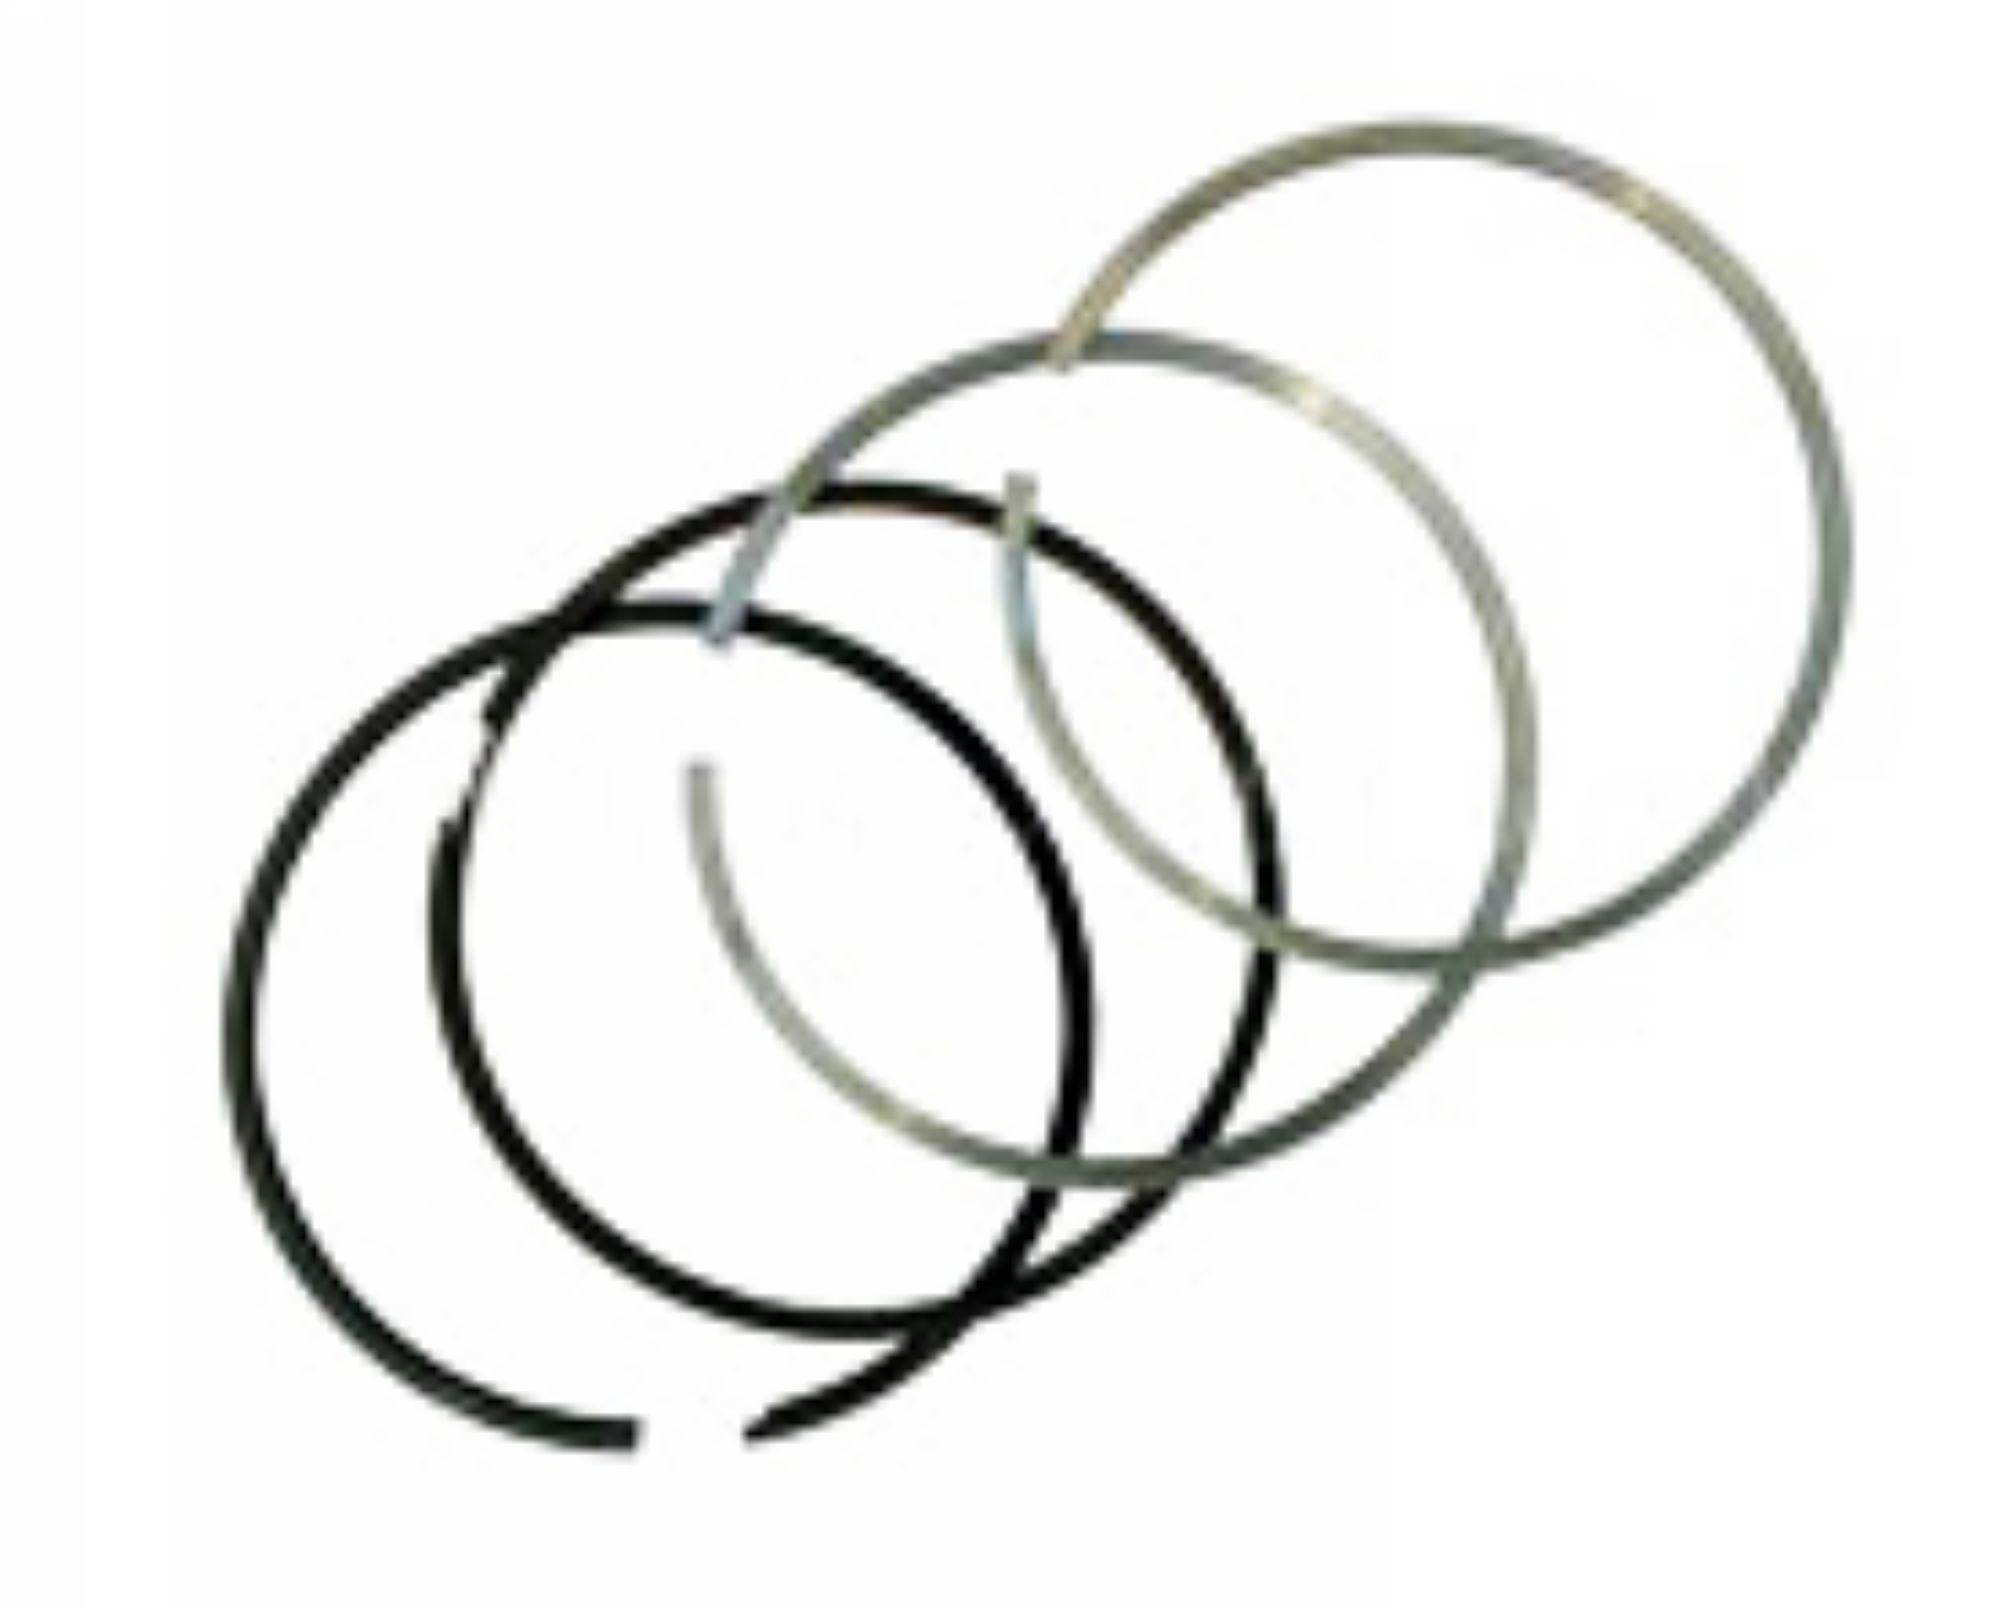 Gasket Diagram For 2004 Infiniti G35 Wiring Diagrams in addition Diagram Parts Of A Hat as well Very Good Single Coil Pickup Wiring Diagram Ideas Super Wiring Diagram 2 Single Coils Wiring Jobs Sussex besides Honda Gx390 Wiring Diagram likewise 1985 Honda Shadow Vt700 Wiring Diagram. on wiring diagram honda nt diagrams